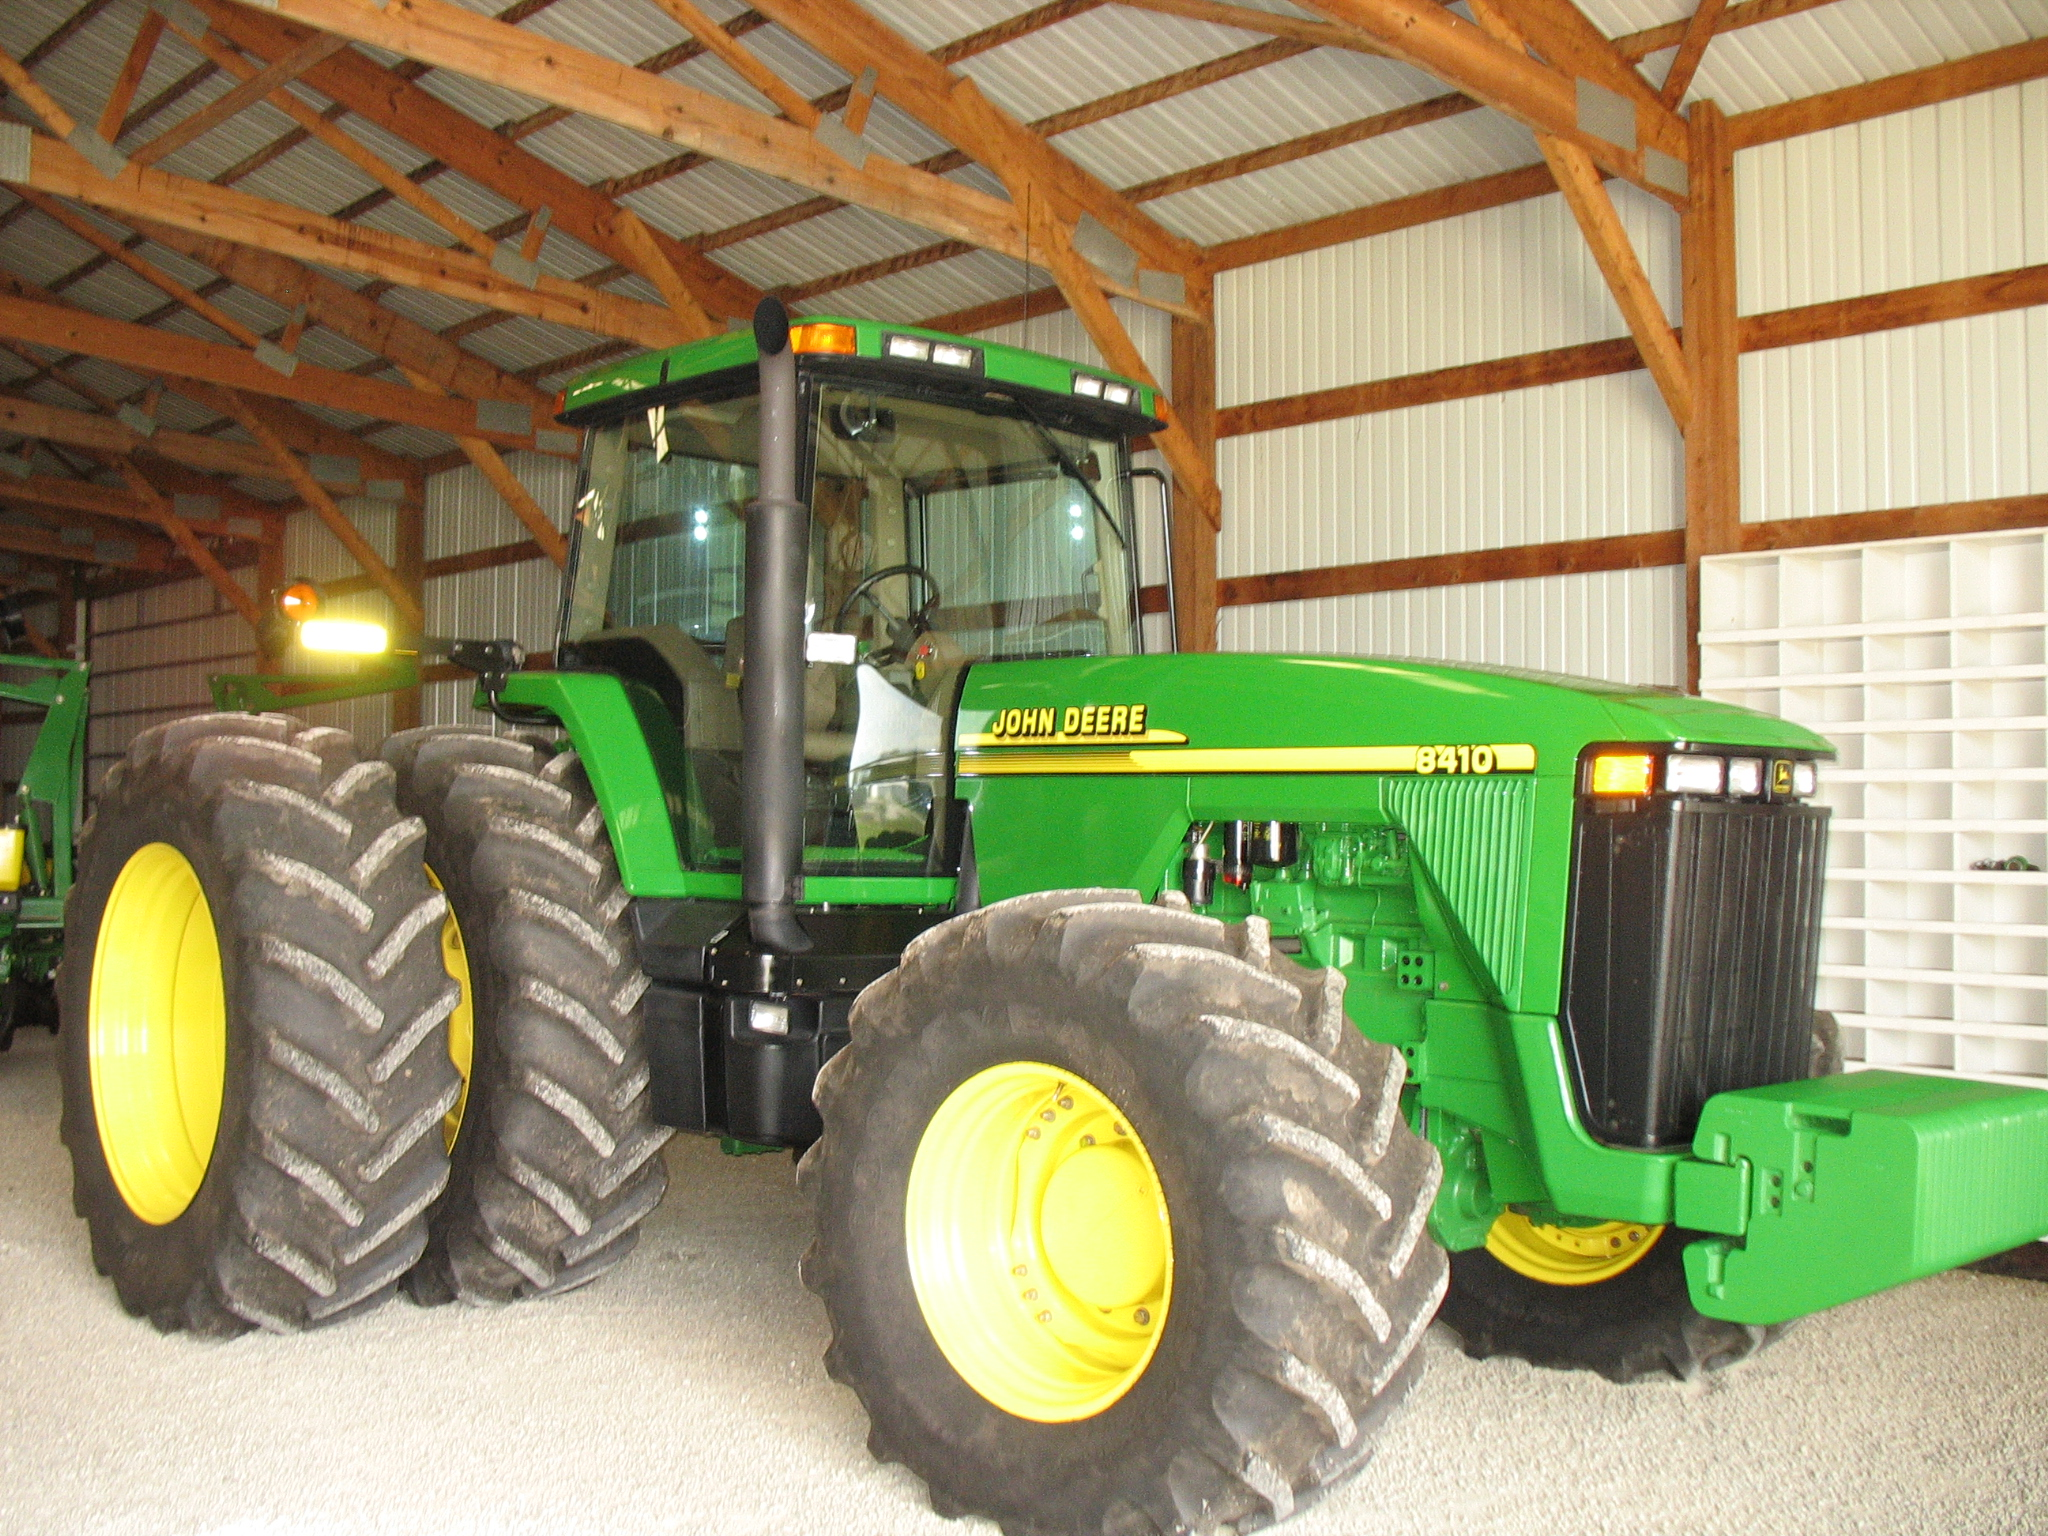 John deere 8410 tractor sells for 136k at auction for 8410 3